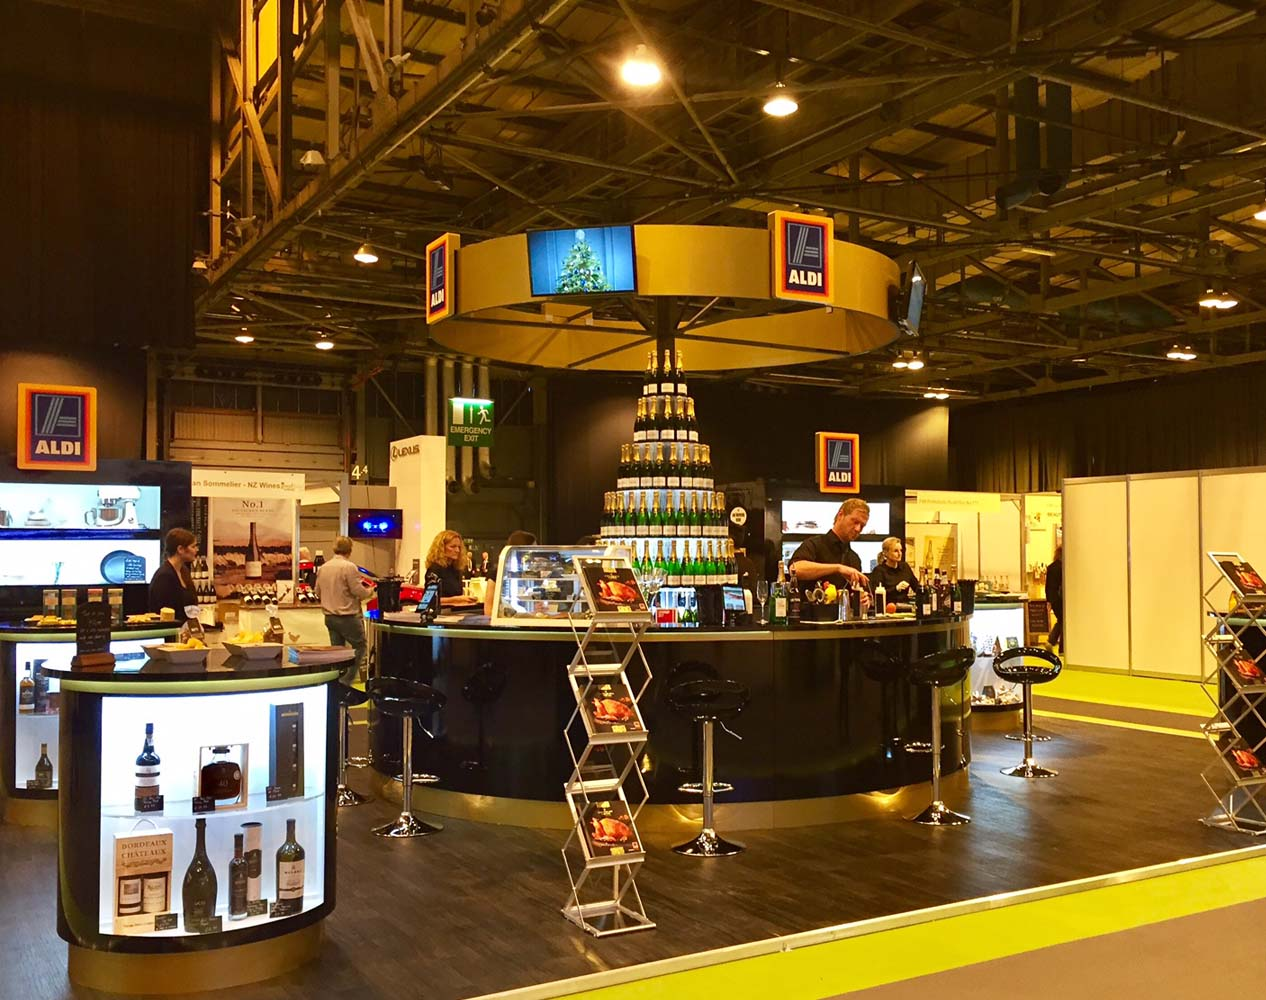 aldi exhibition stand